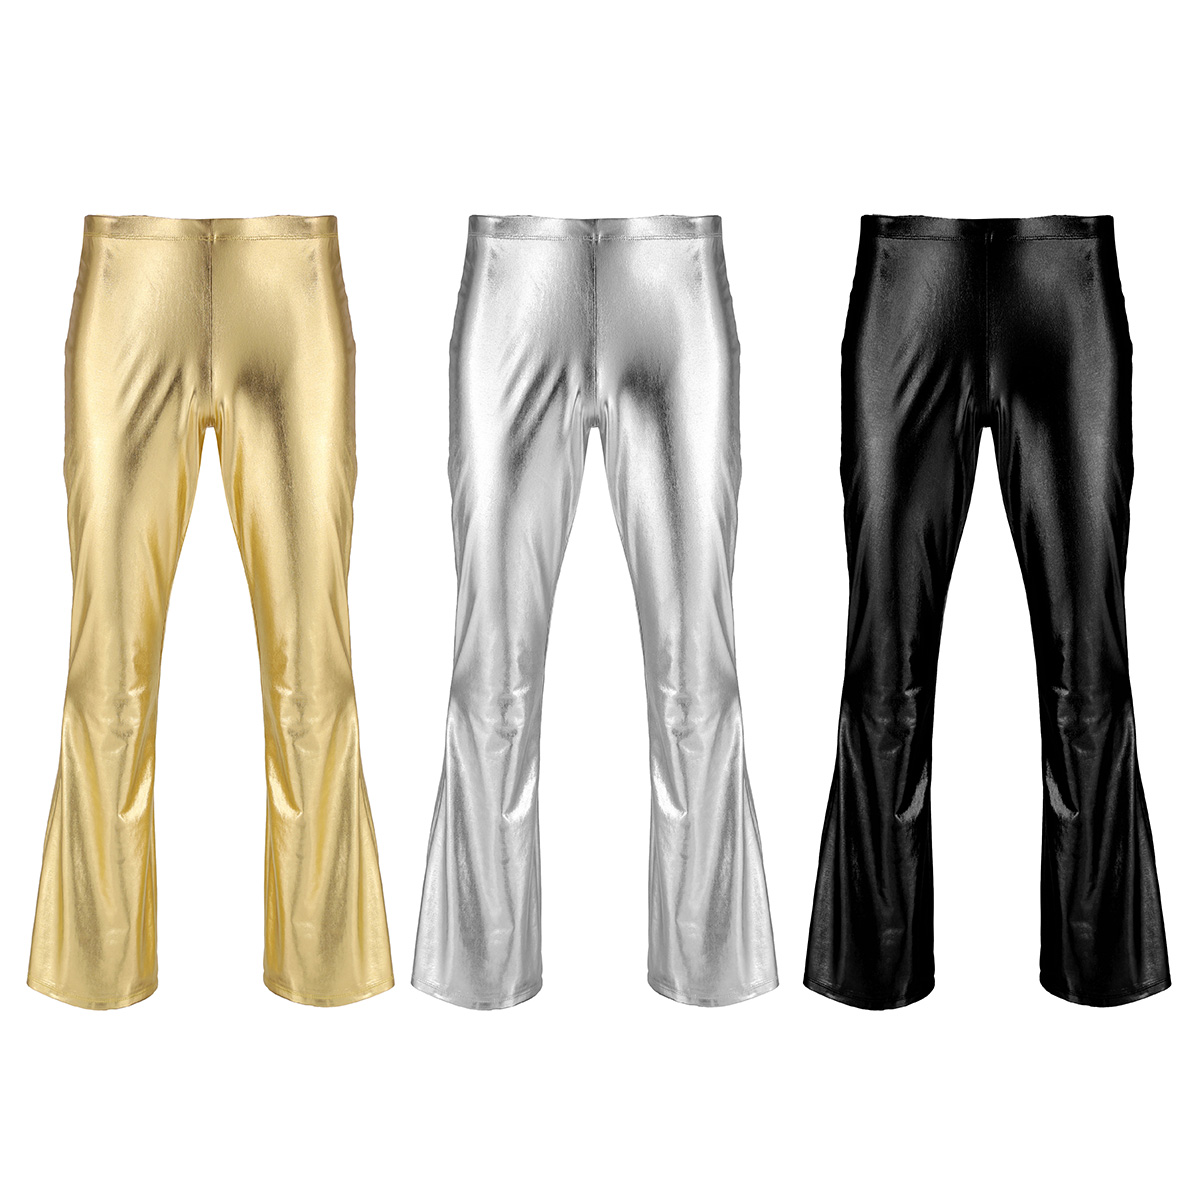 ChicTry Adults Mens Shiny Metallic Disco Pants with Bell Bottom Flared Long Pants Dude Costume Trousers for 70's Theme Parties 13